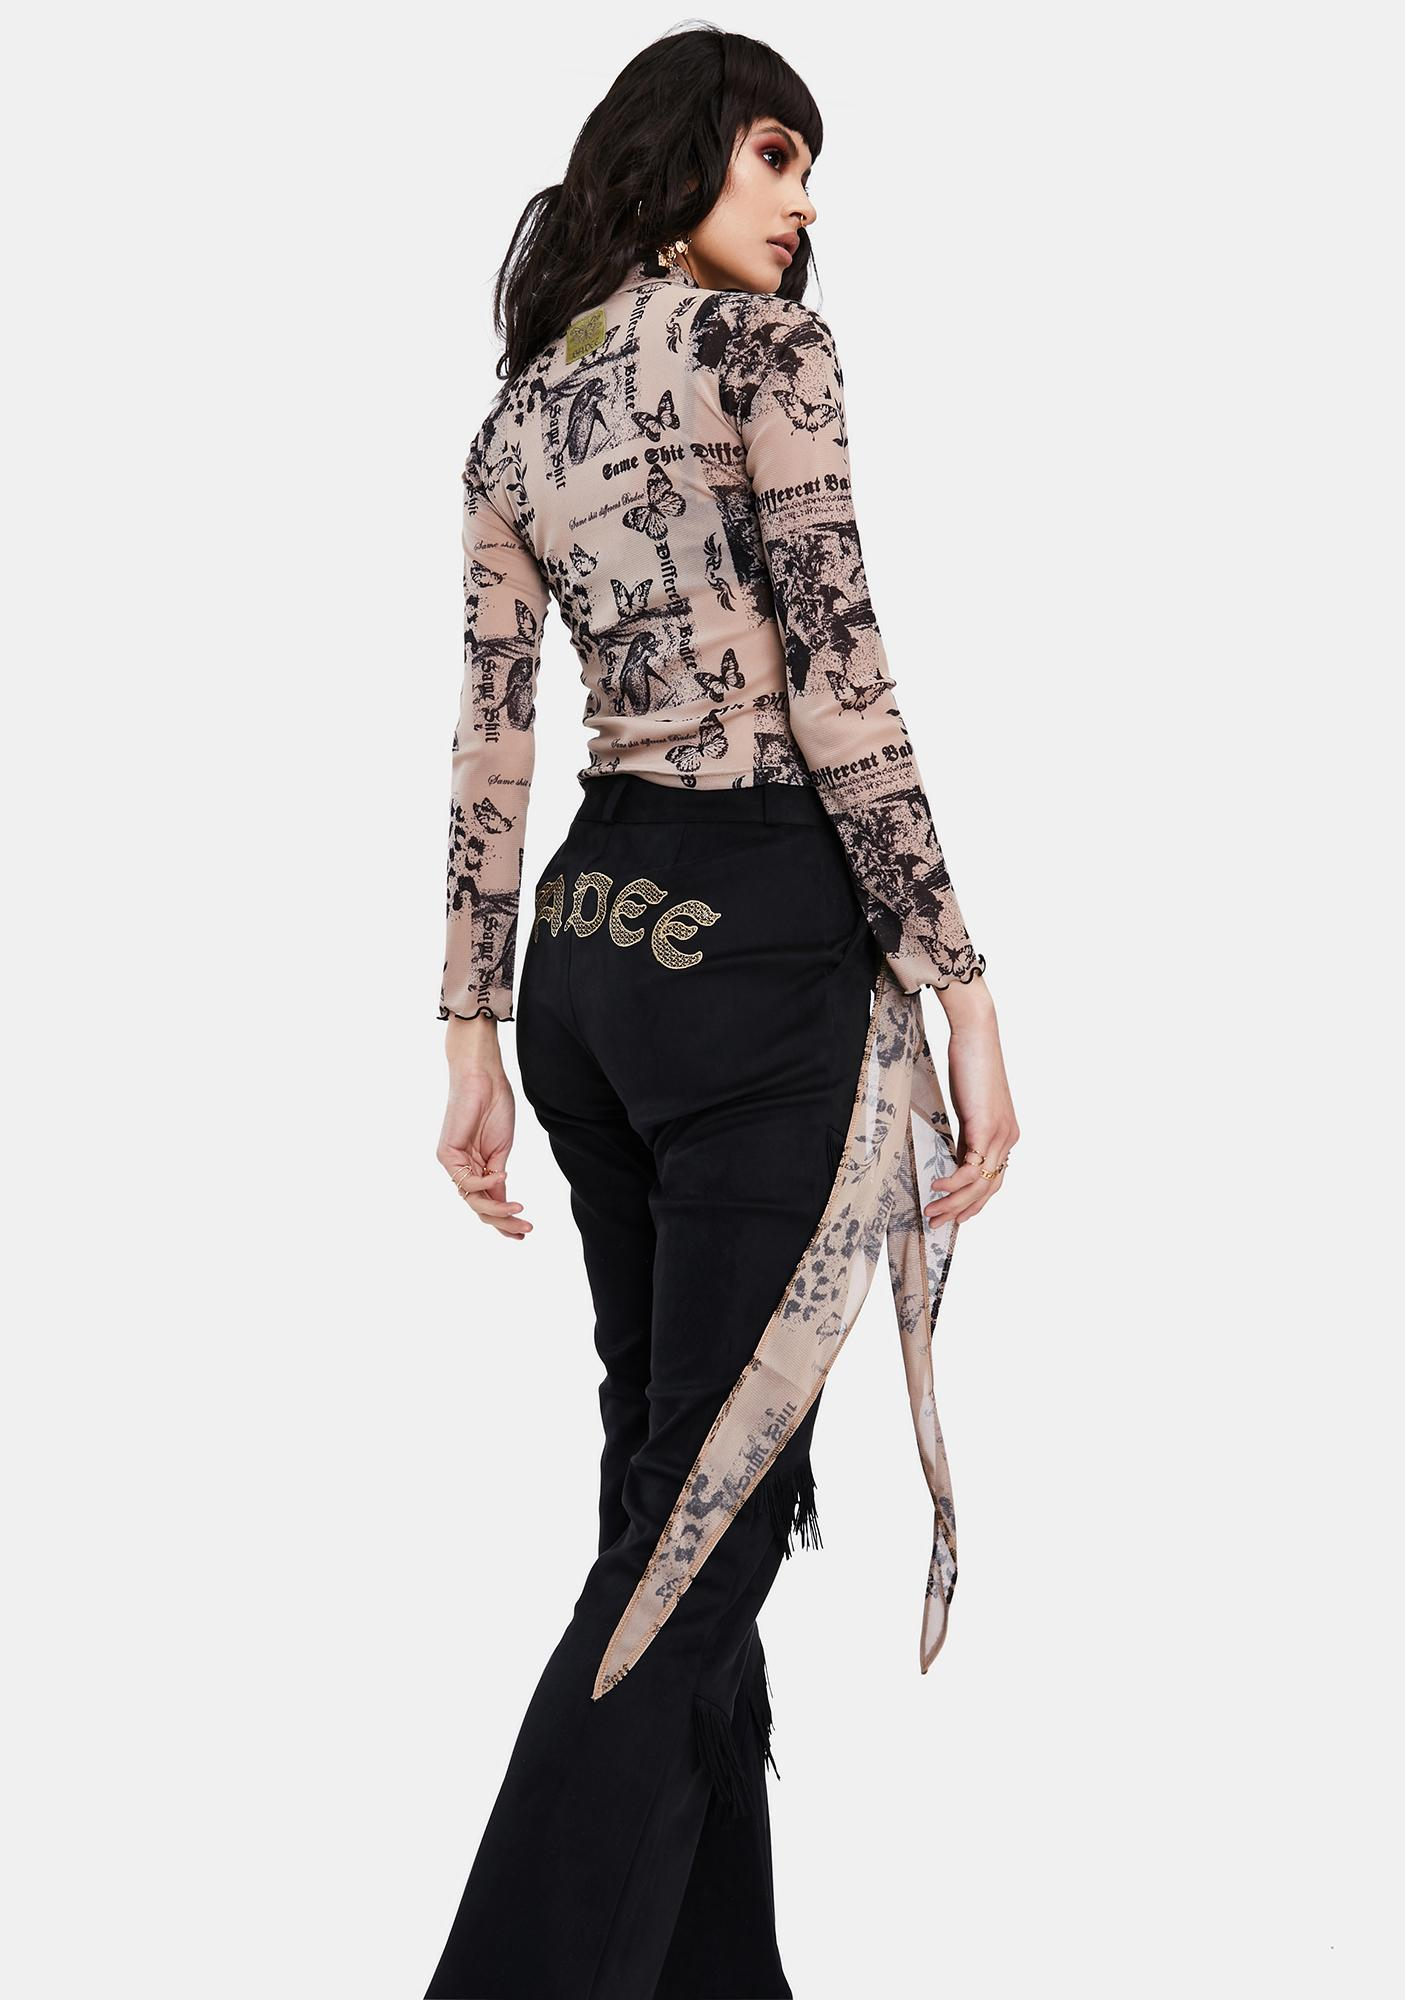 BADEE Beige Butterfly Scarf Layered Mesh Top